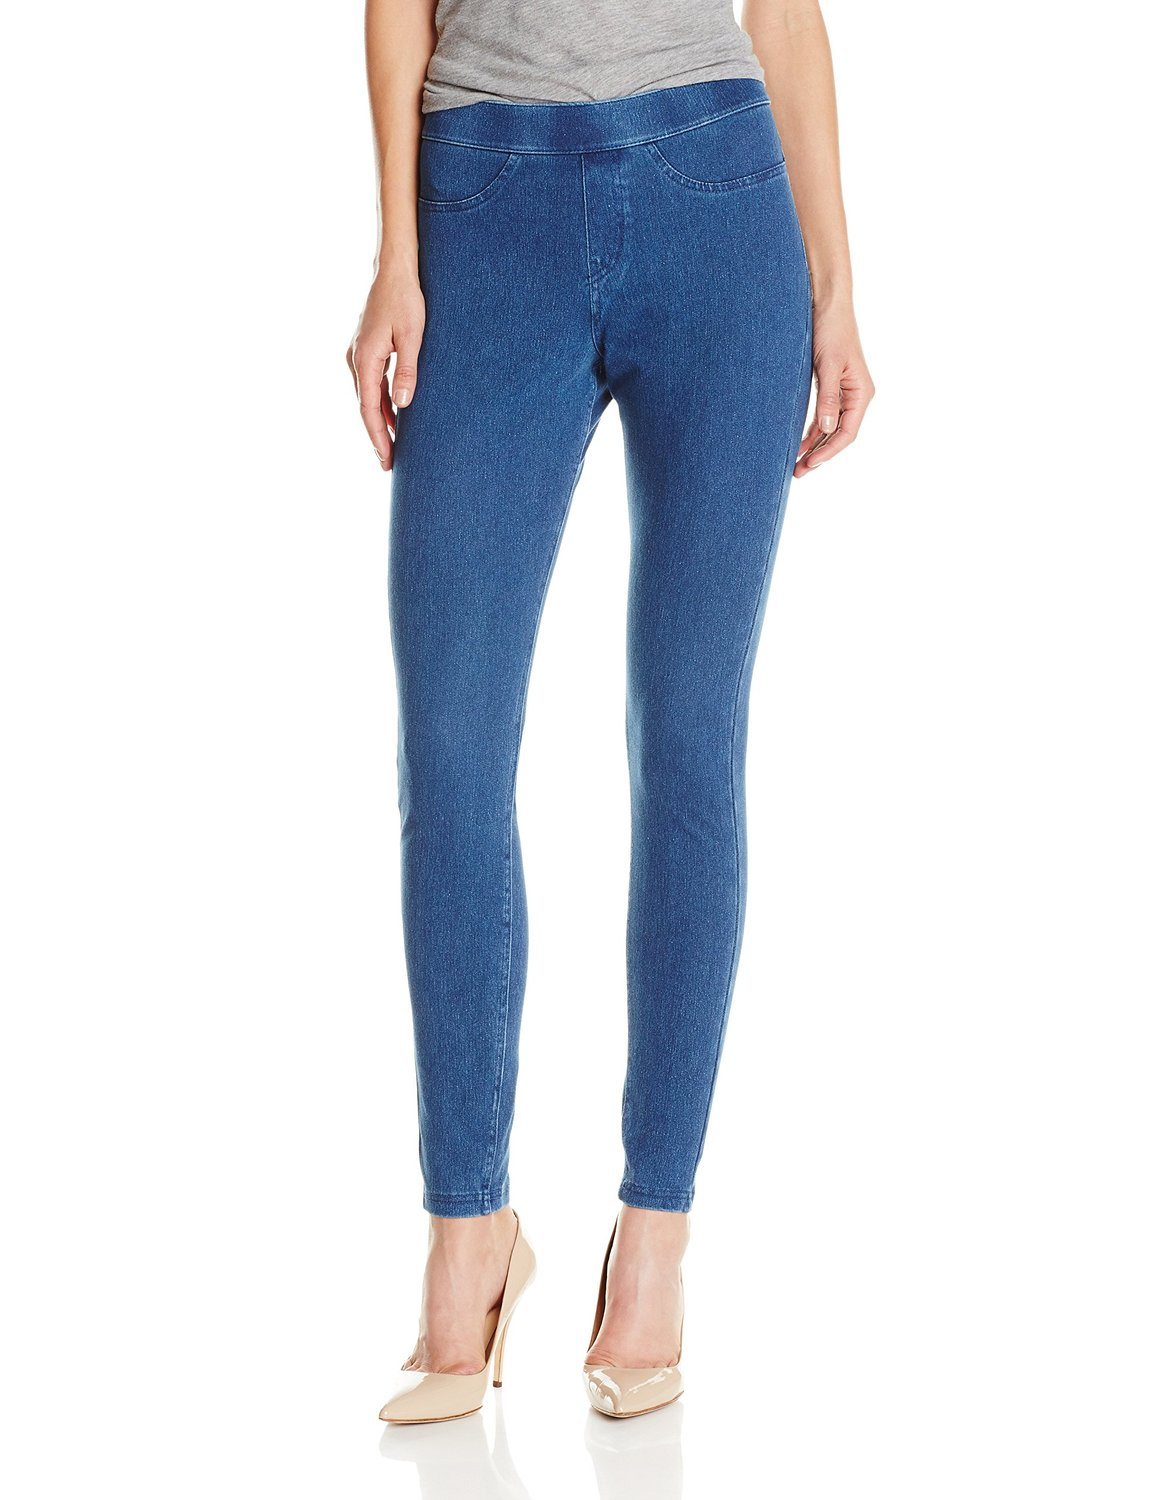 hue womenu0027s curvy fit jeans leggings: amazon.ca: clothing u0026 accessories stgkgkx